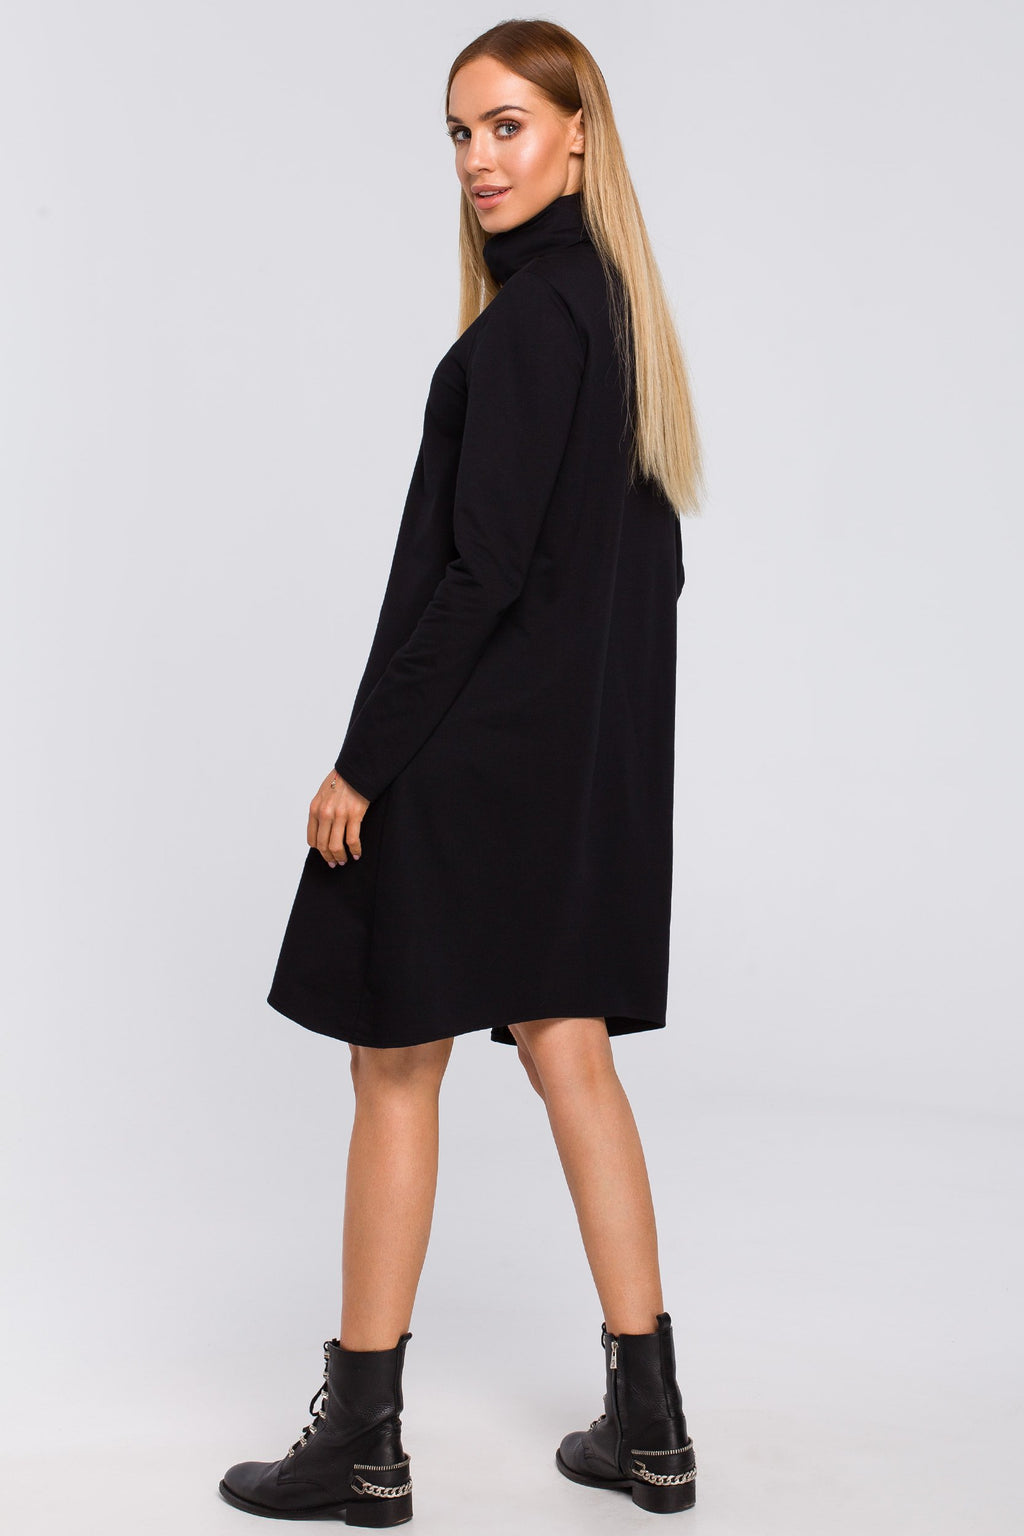 Black Cotton Turtleneck Trapeze Dress - So Chic Boutique